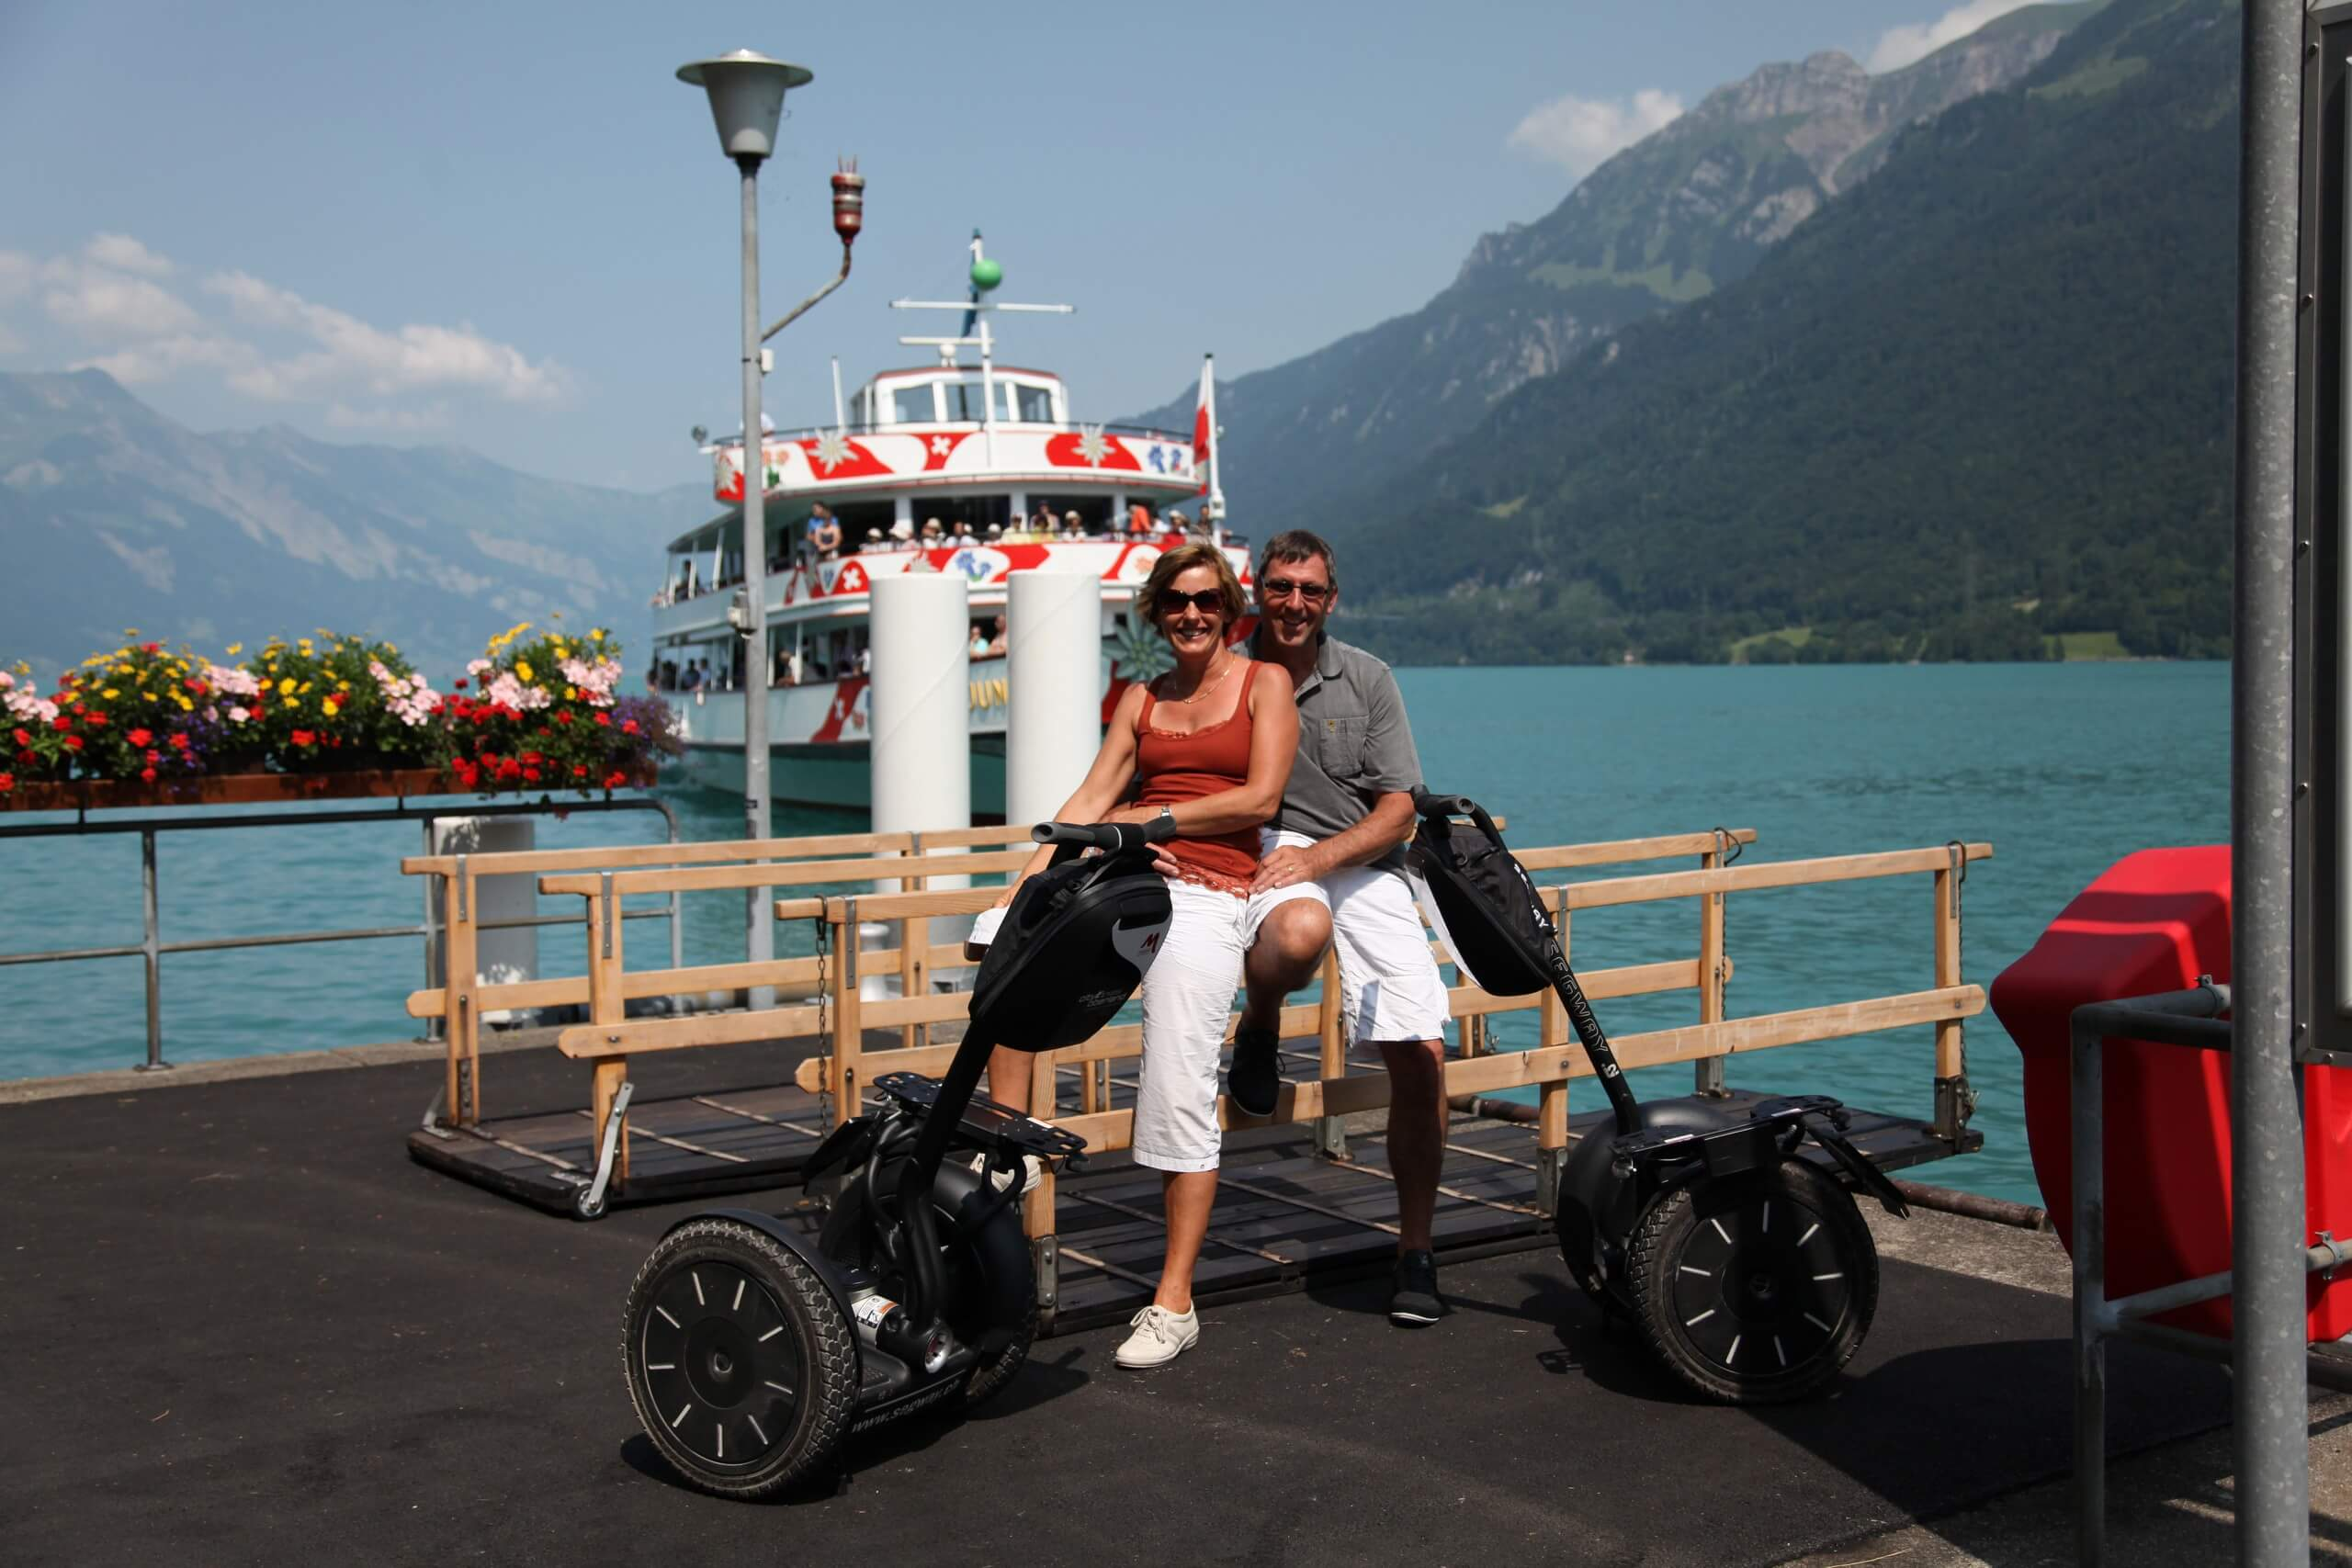 interlaken-segway-sommer-brienzersee-tour